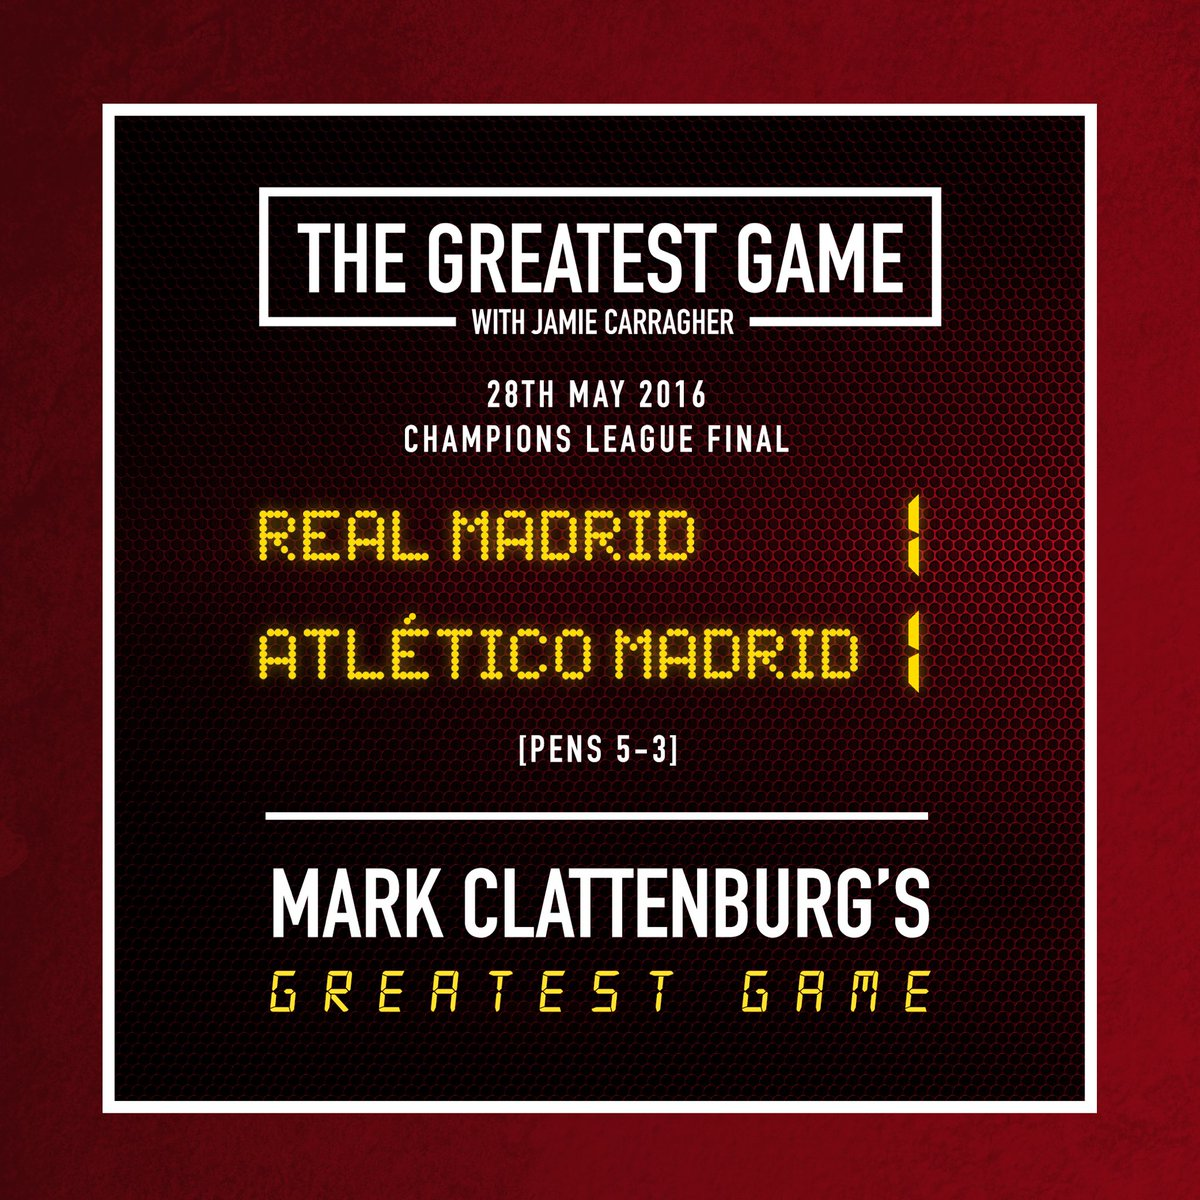 🗓 Here is what @clattenburg1975 picked as his greatest game! _______________________________  Full episode is out on all podcast platforms 🎧👇  https://t.co/kGcN2VIcfG https://t.co/RfpcaGCWD6